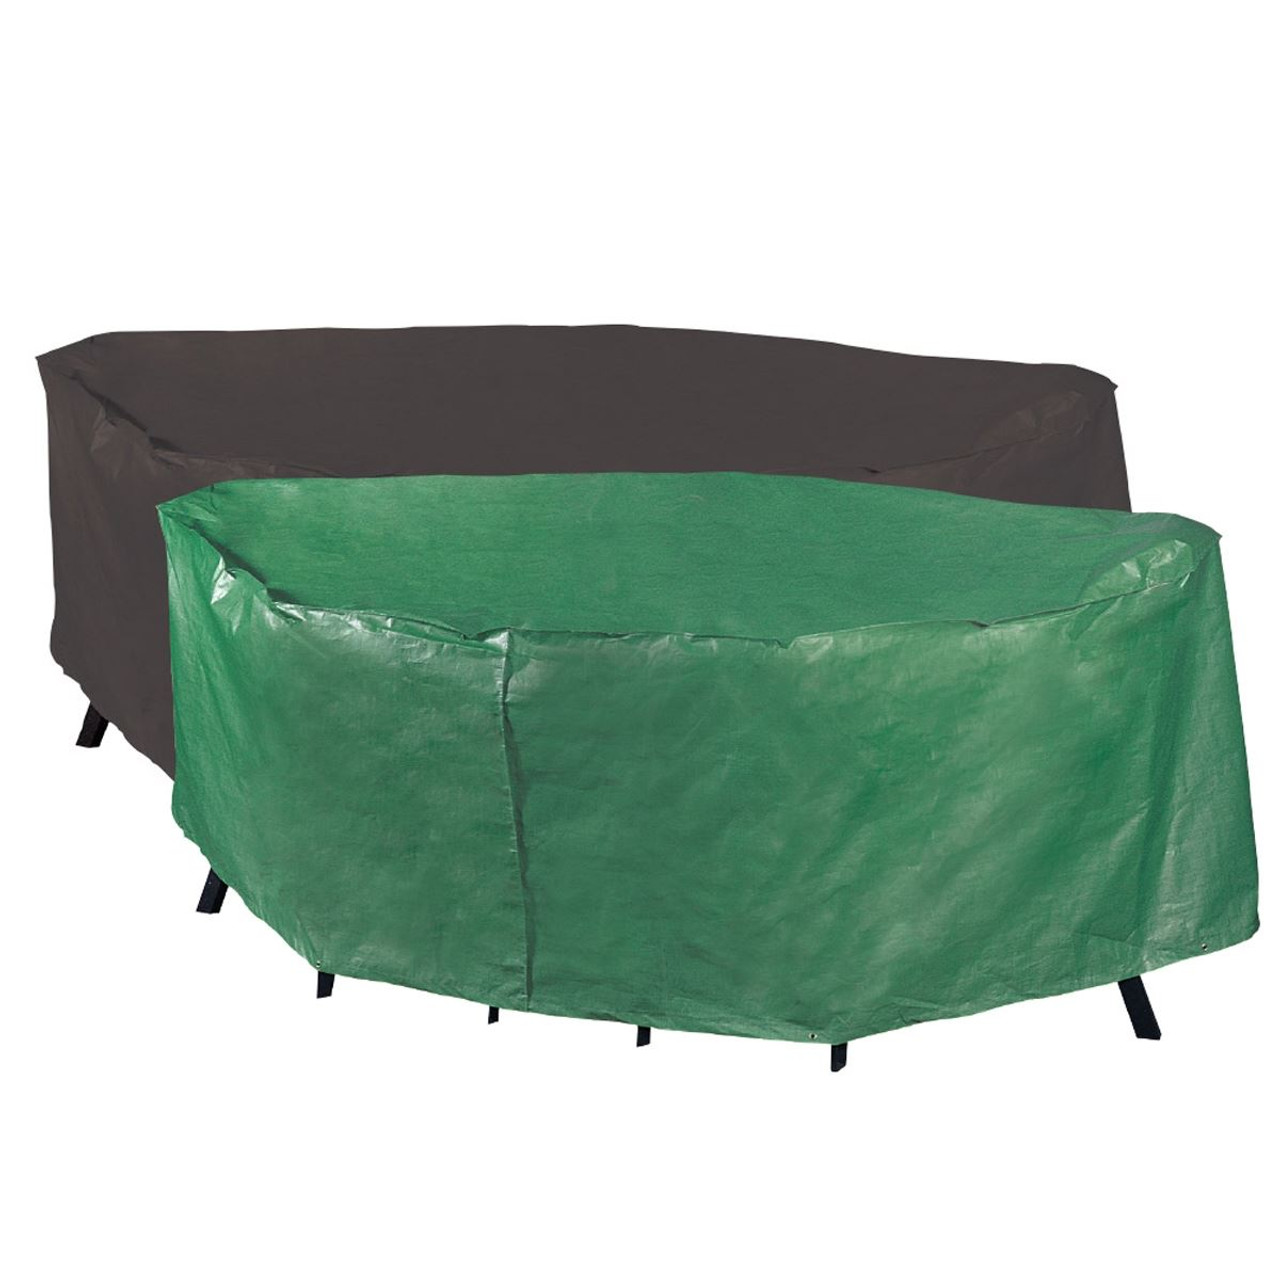 Protector 2000 Bosmere Rectangular 8 Seat Patio Set Cover